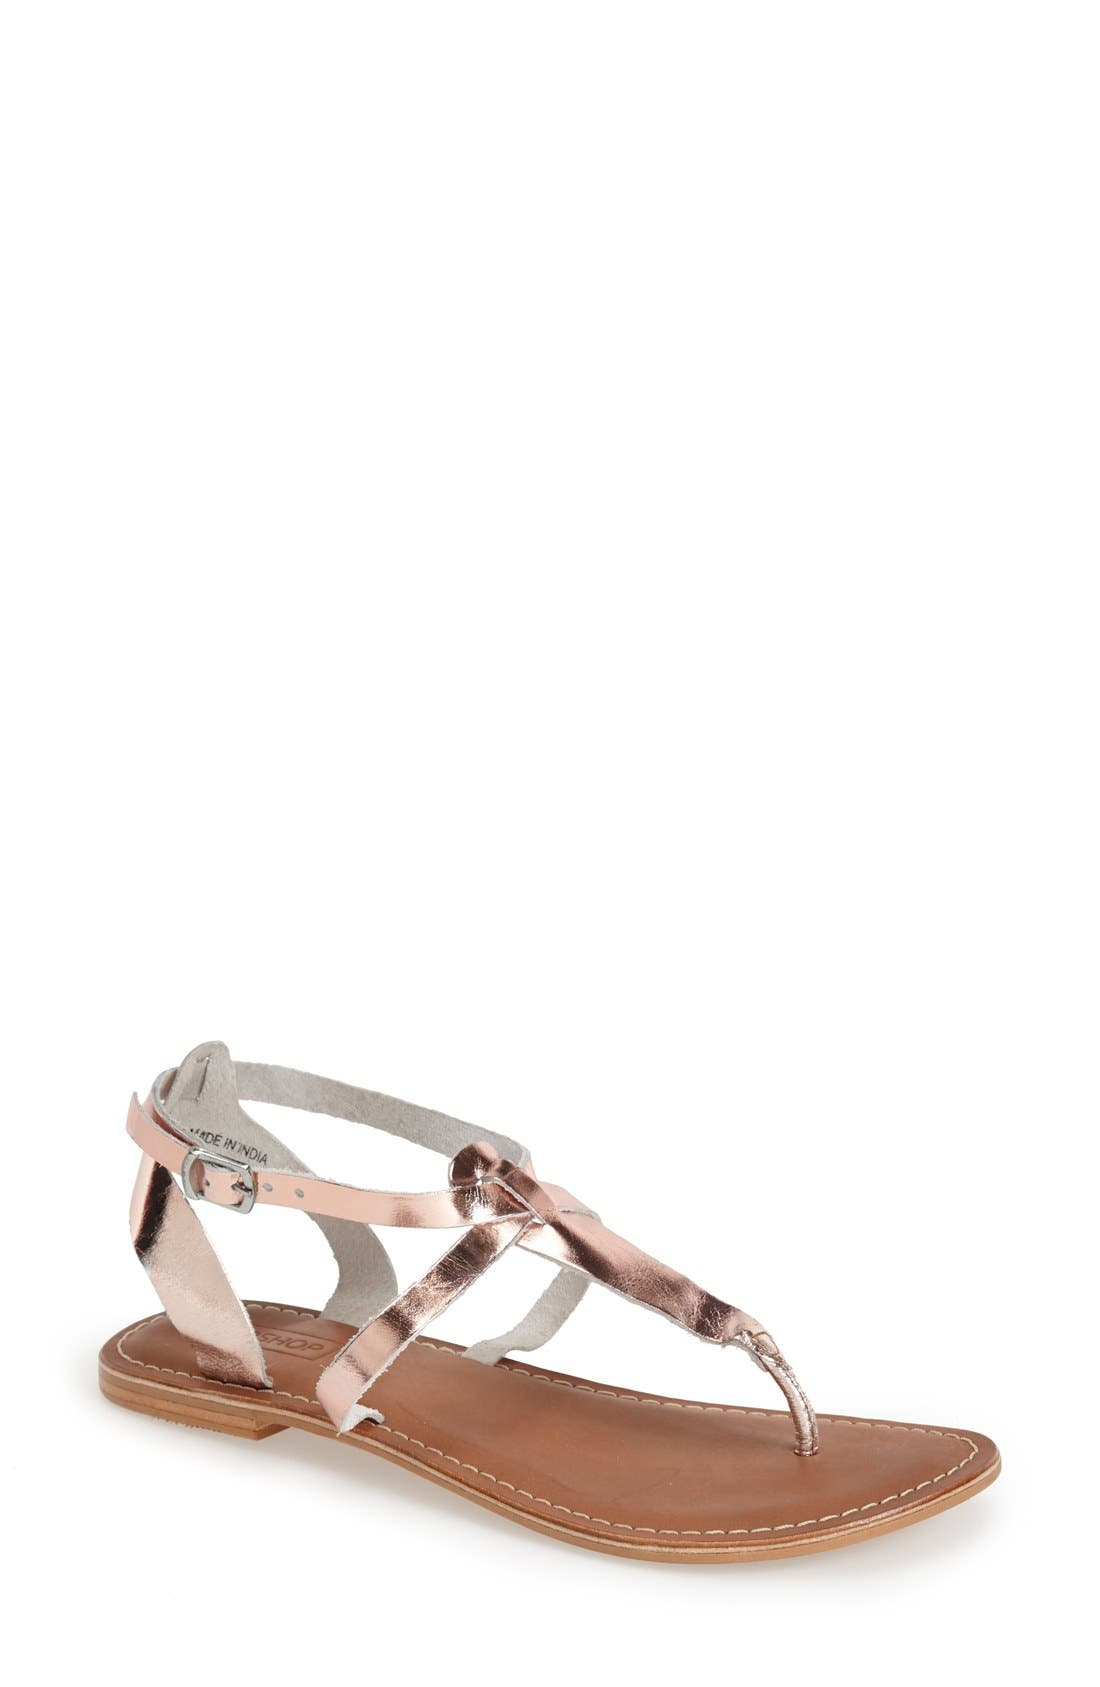 Alternate Image 1 Selected - Topshop 'Horizon' Leather Sandal